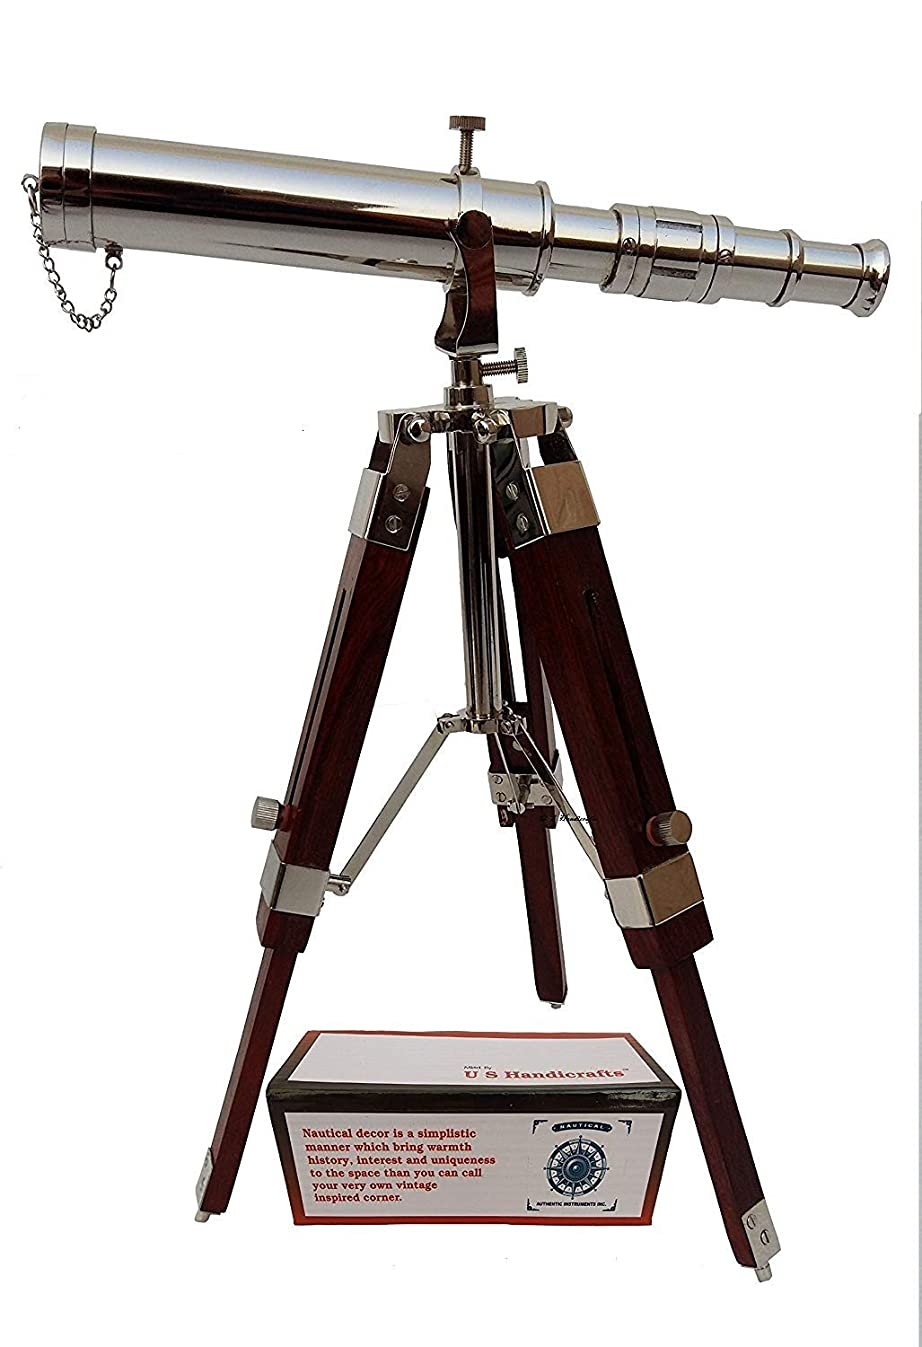 US HANDICRAFTS Vintage Brass Nickle Telescope on Tripod Stand/Chrome Desktop Telescope for Home Decor & Table Accessory Nautical Spyglass Telescope for Navy and Outdoor Adventures.